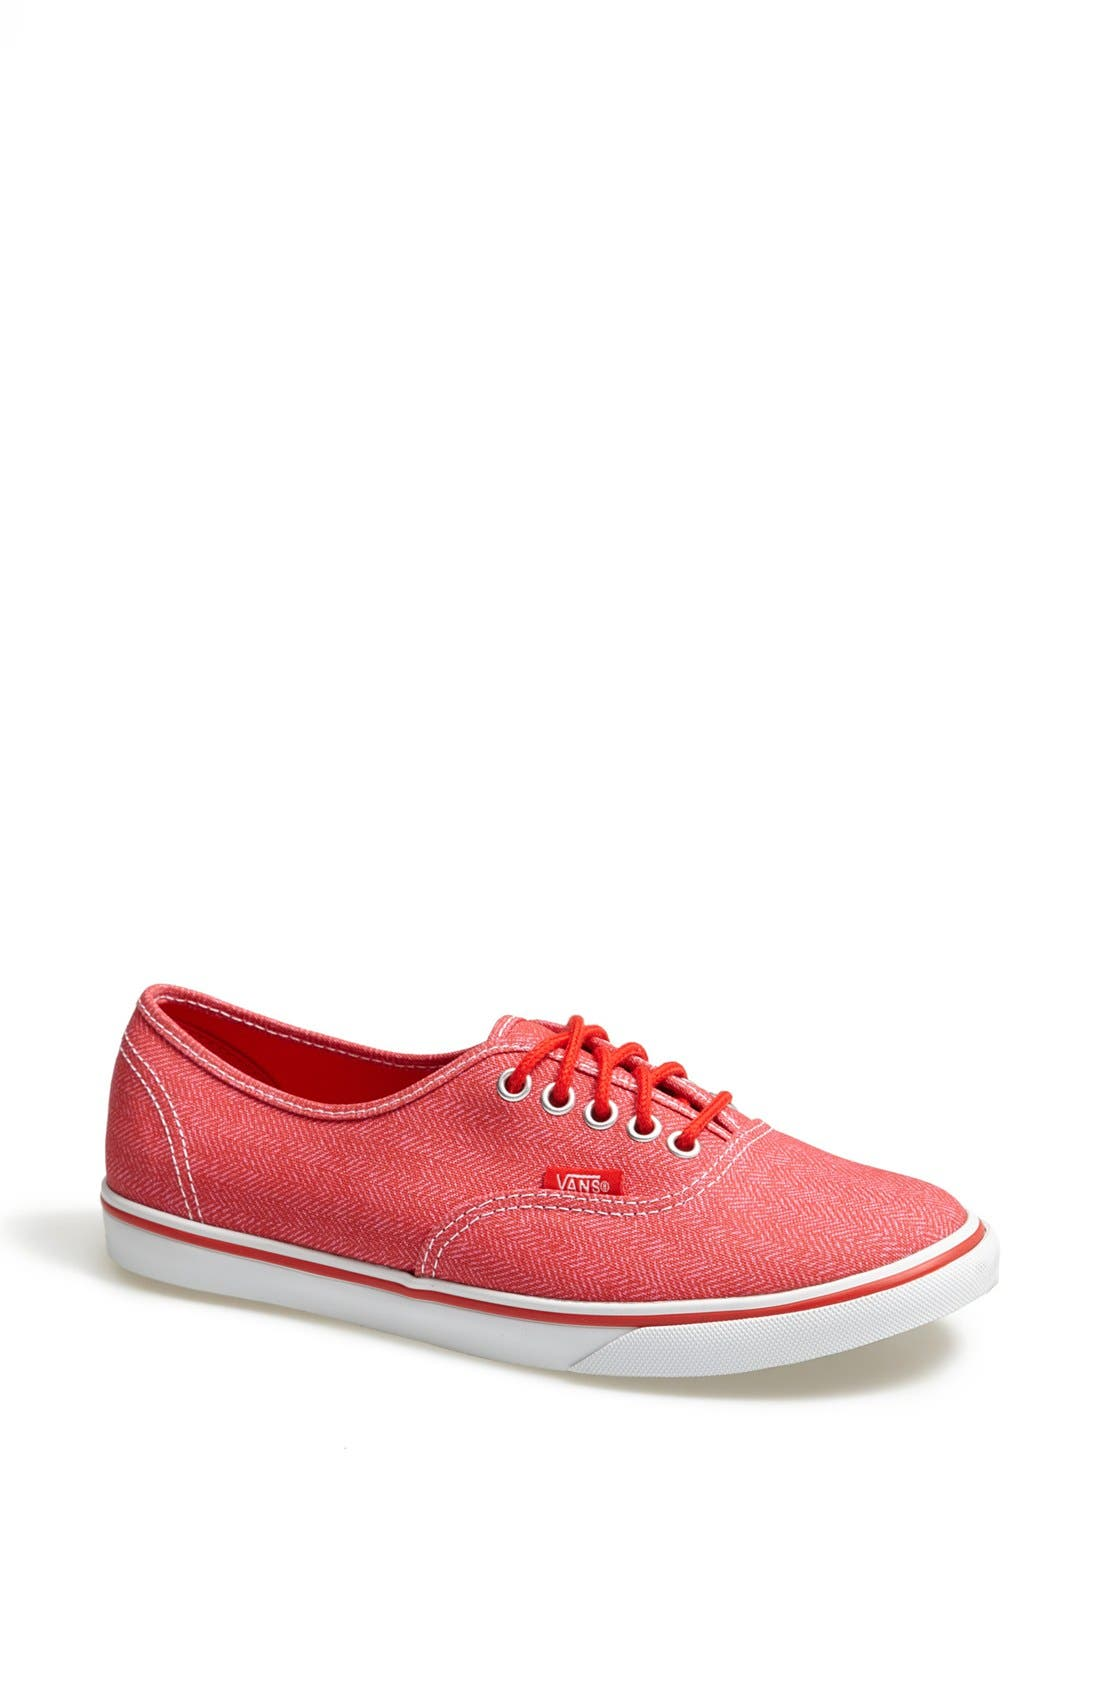 Alternate Image 1 Selected - Vans 'Authentic - Lo Pro' Print Sneaker